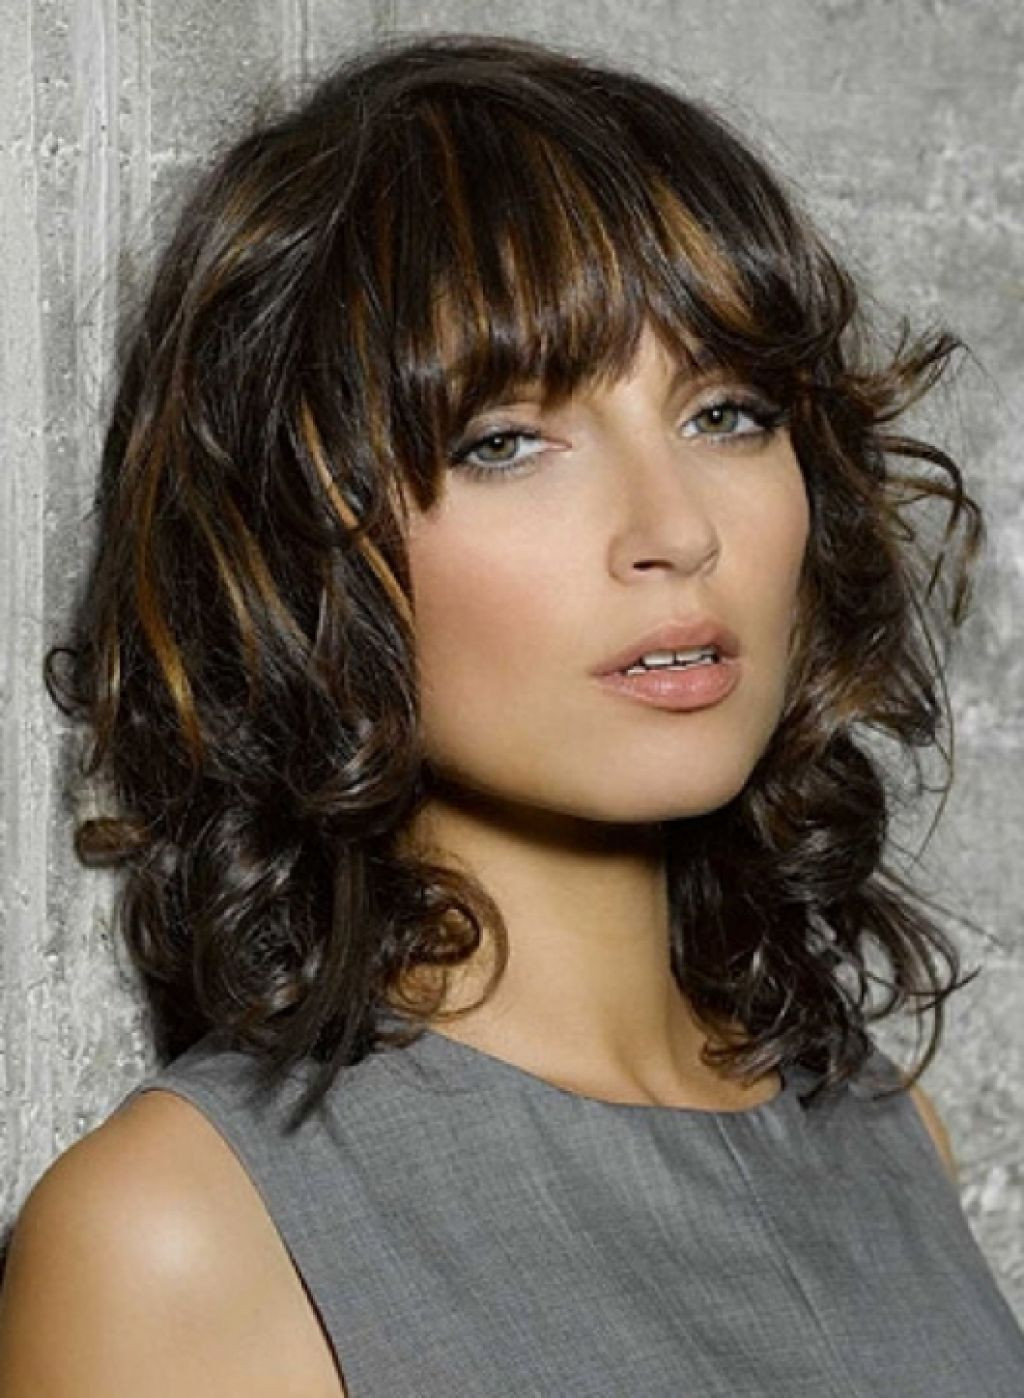 Best ideas about Cute Hairstyles For Thick Hair . Save or Pin cute hairstyles for thick curly hair HairStyles Now.